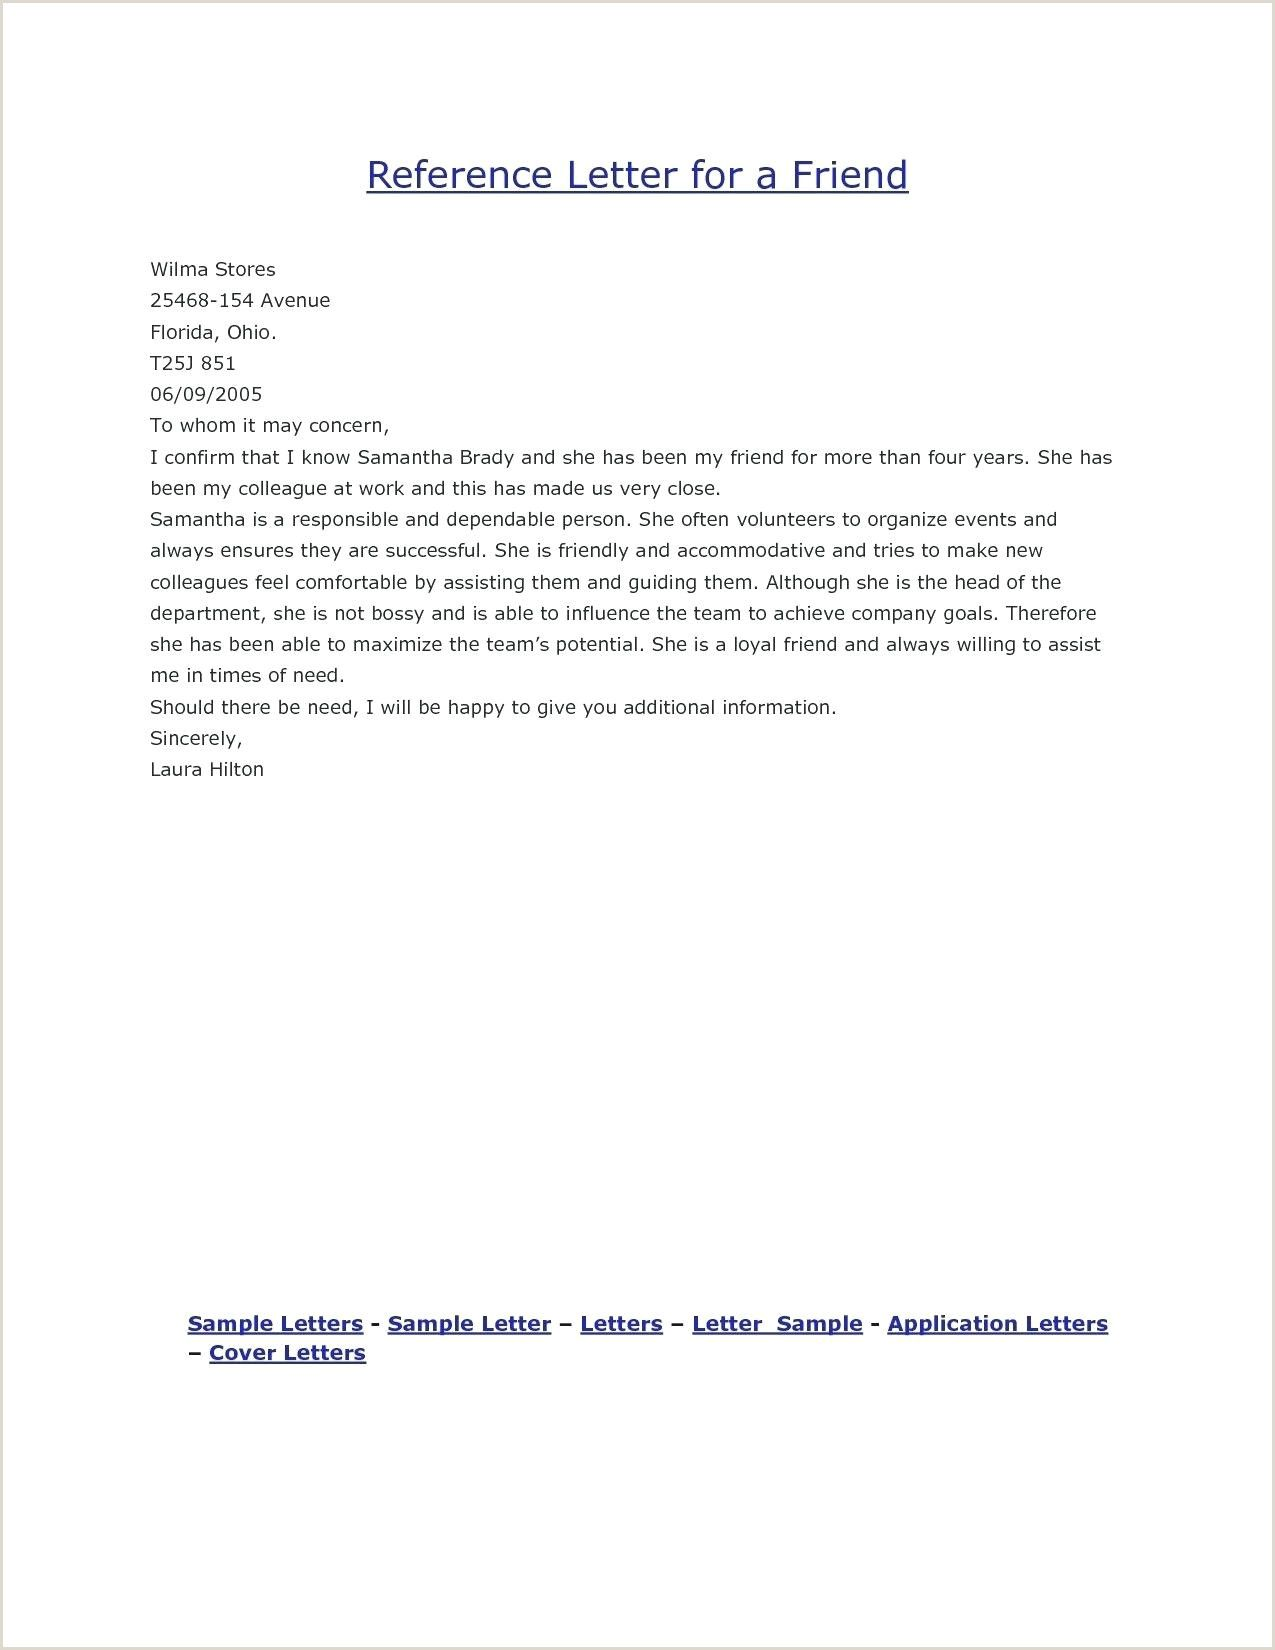 Request Letter For Good Moral Good Morals Writing A Reference